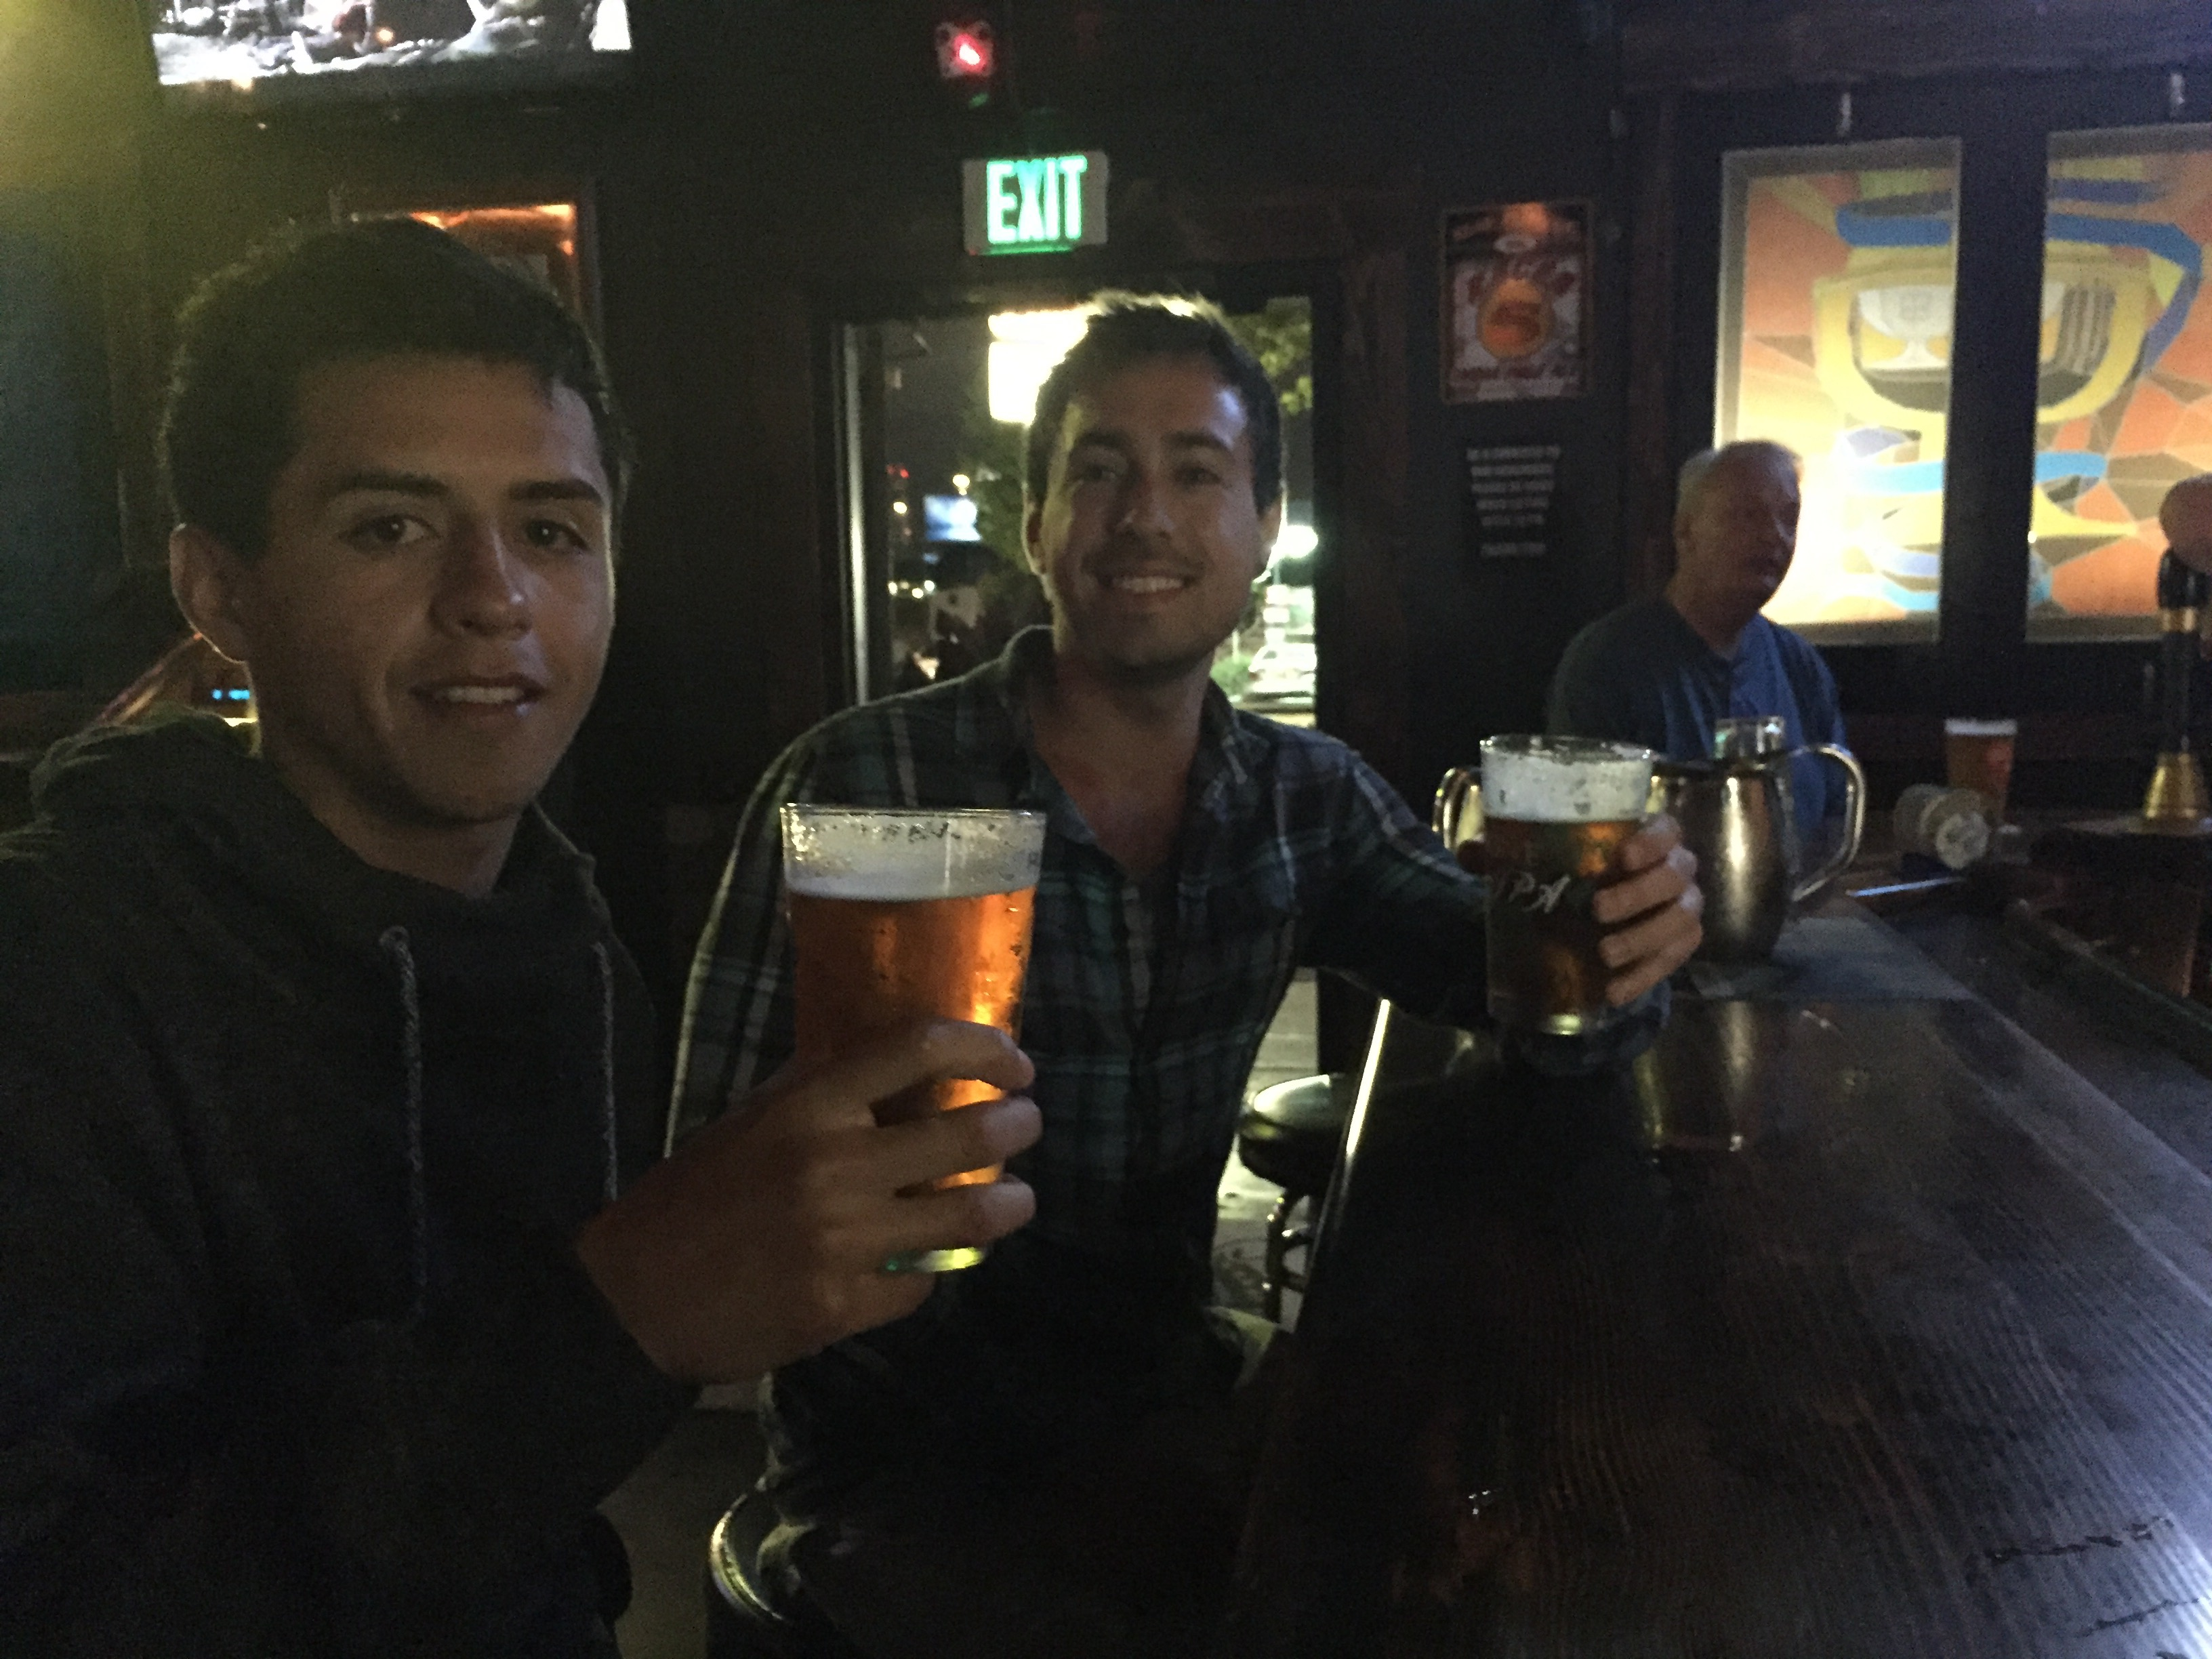 Two Chileans drink beer at Monkey Paw bar in San Diego.